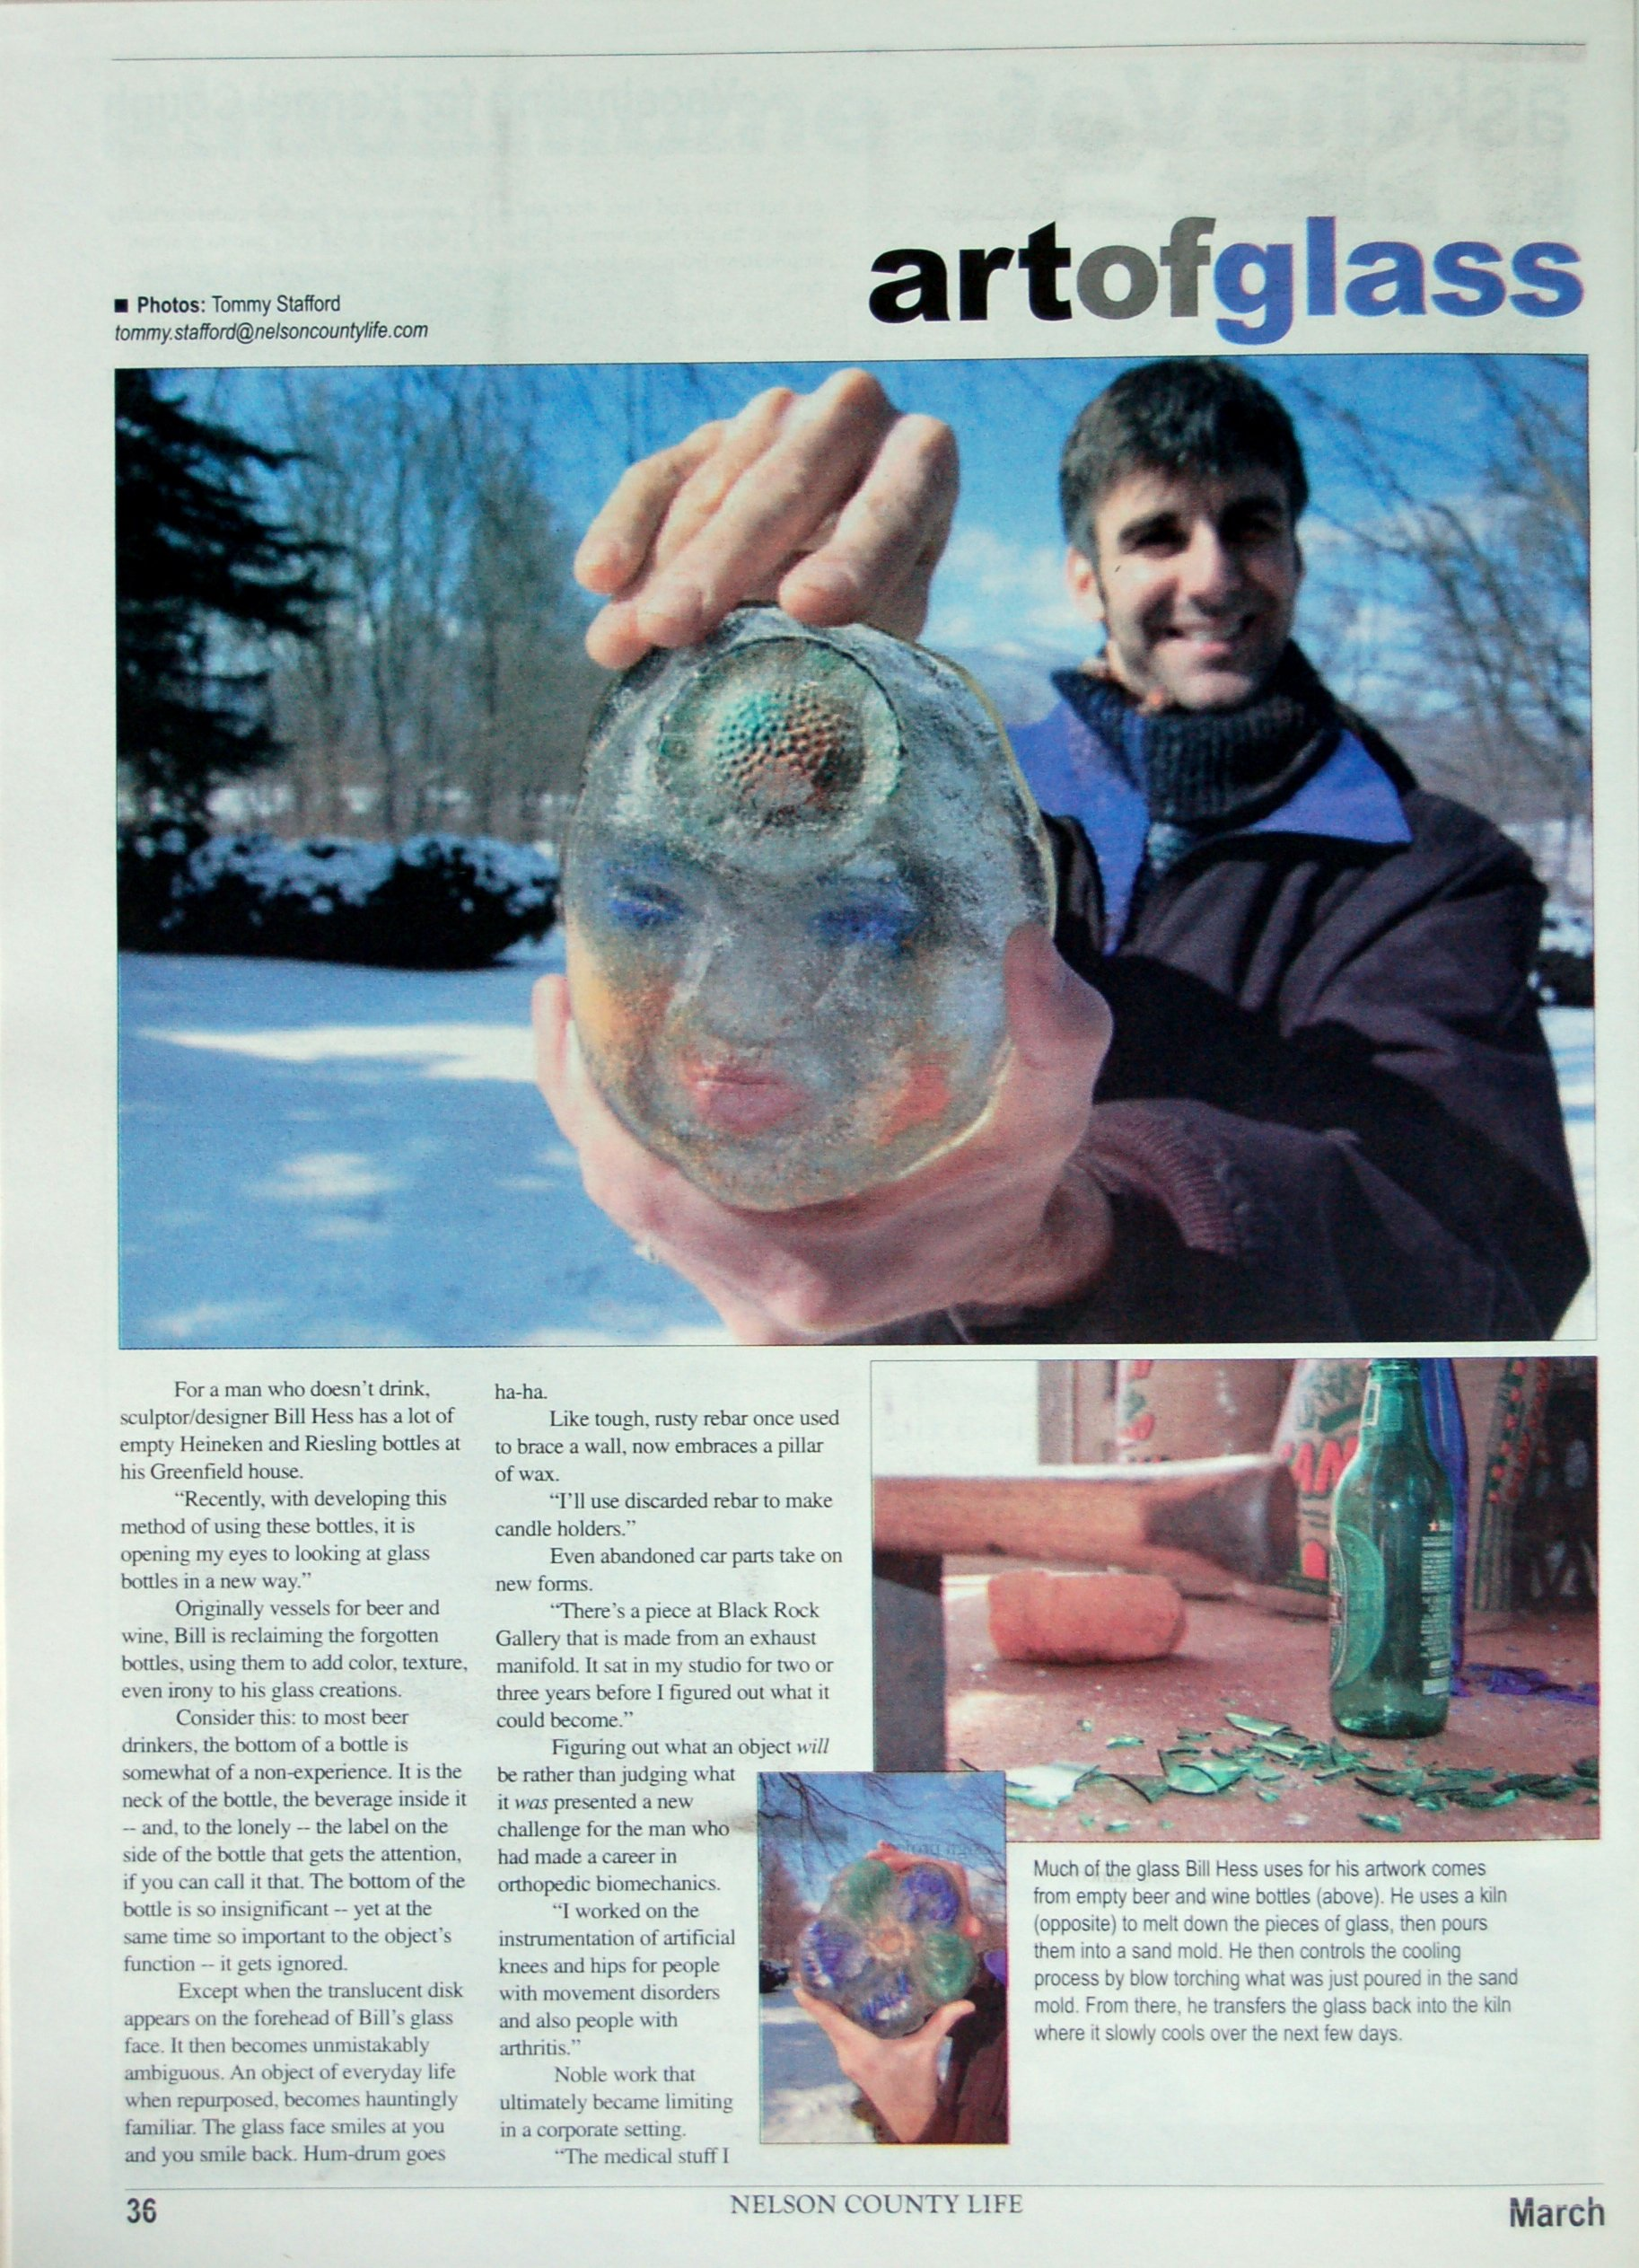 Nelson County Life Page 36.JPG.jpg